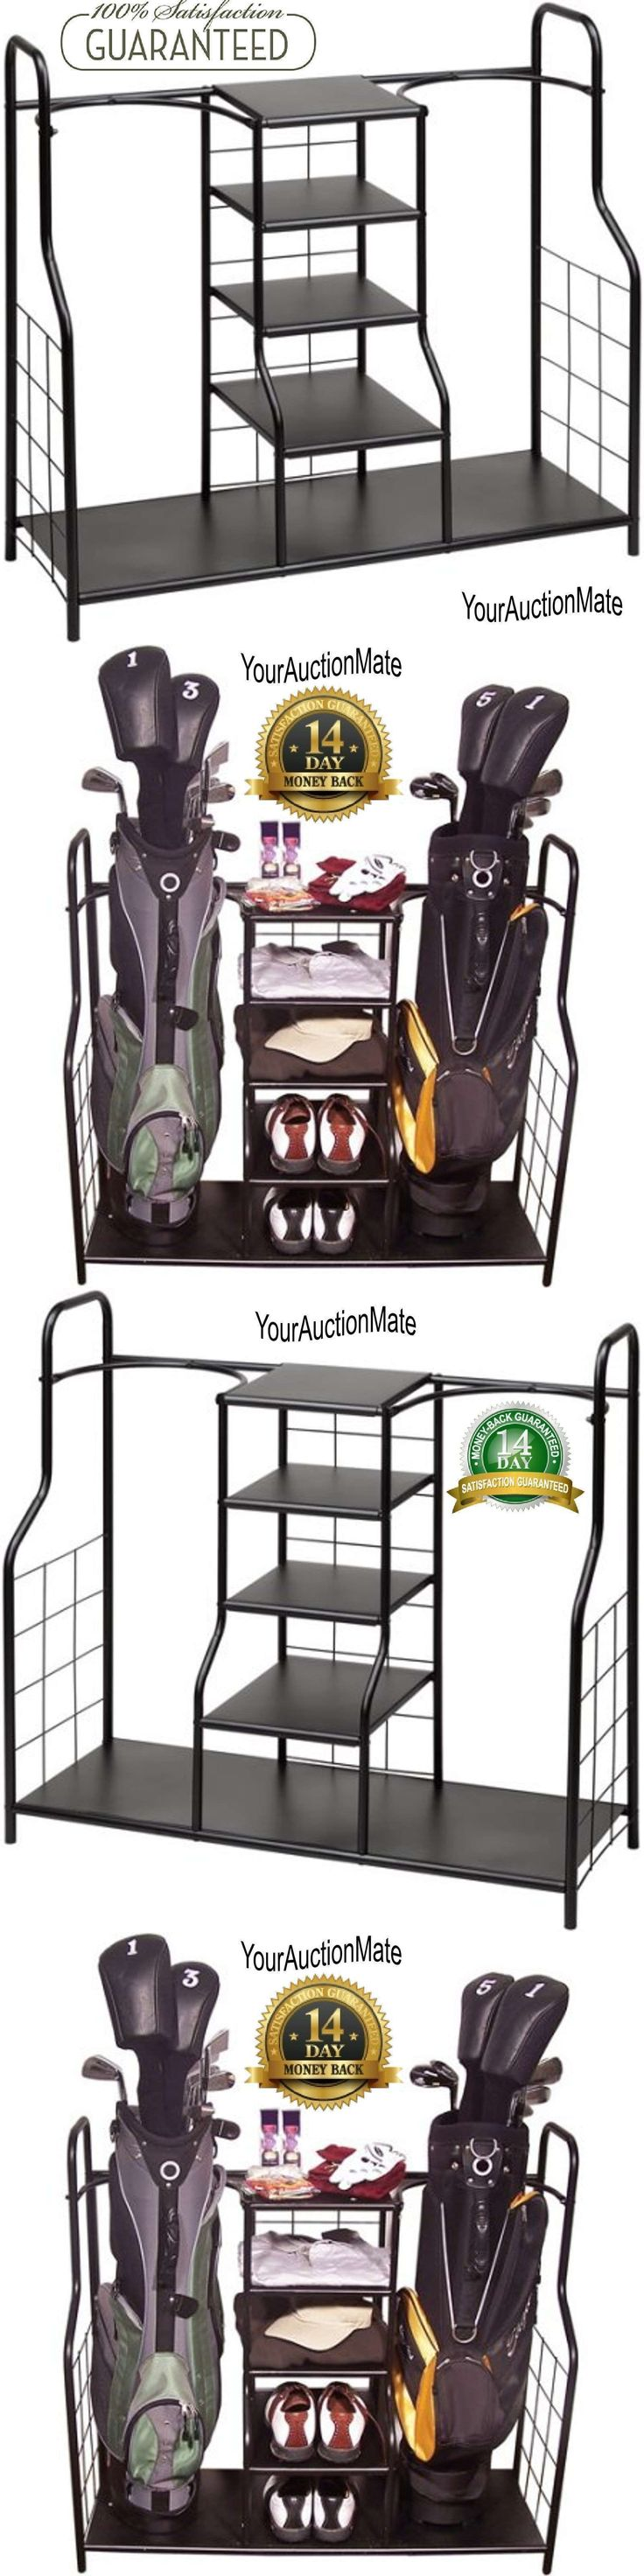 Other Golf Equipment 181155: Golf Bag Organizer Garage Metal Storage Holder Portable Clubs Shoes Accessories -> BUY IT NOW ONLY: $83.79 on eBay!